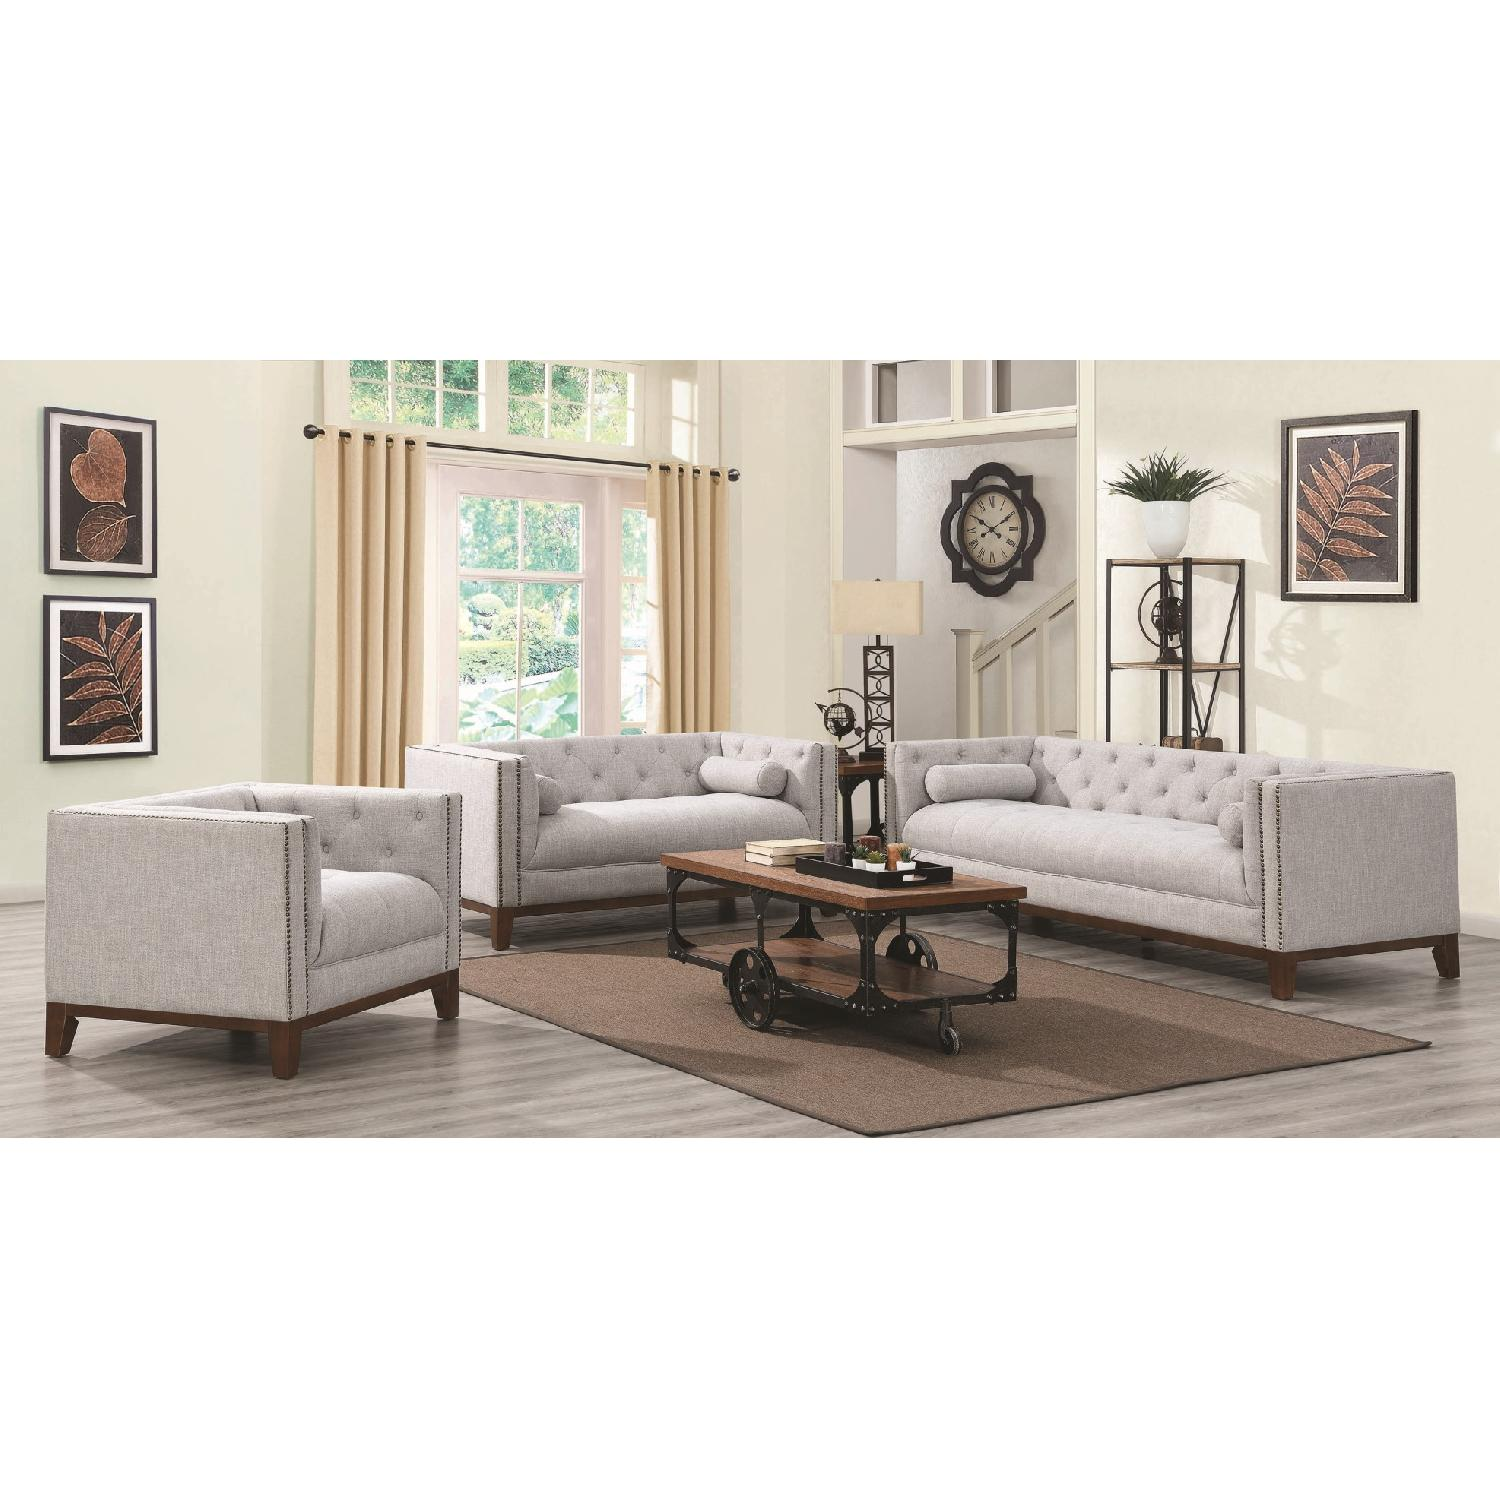 Modern Style Loveseat w/ Tufted Buttons & Nailhead Accent - image-3